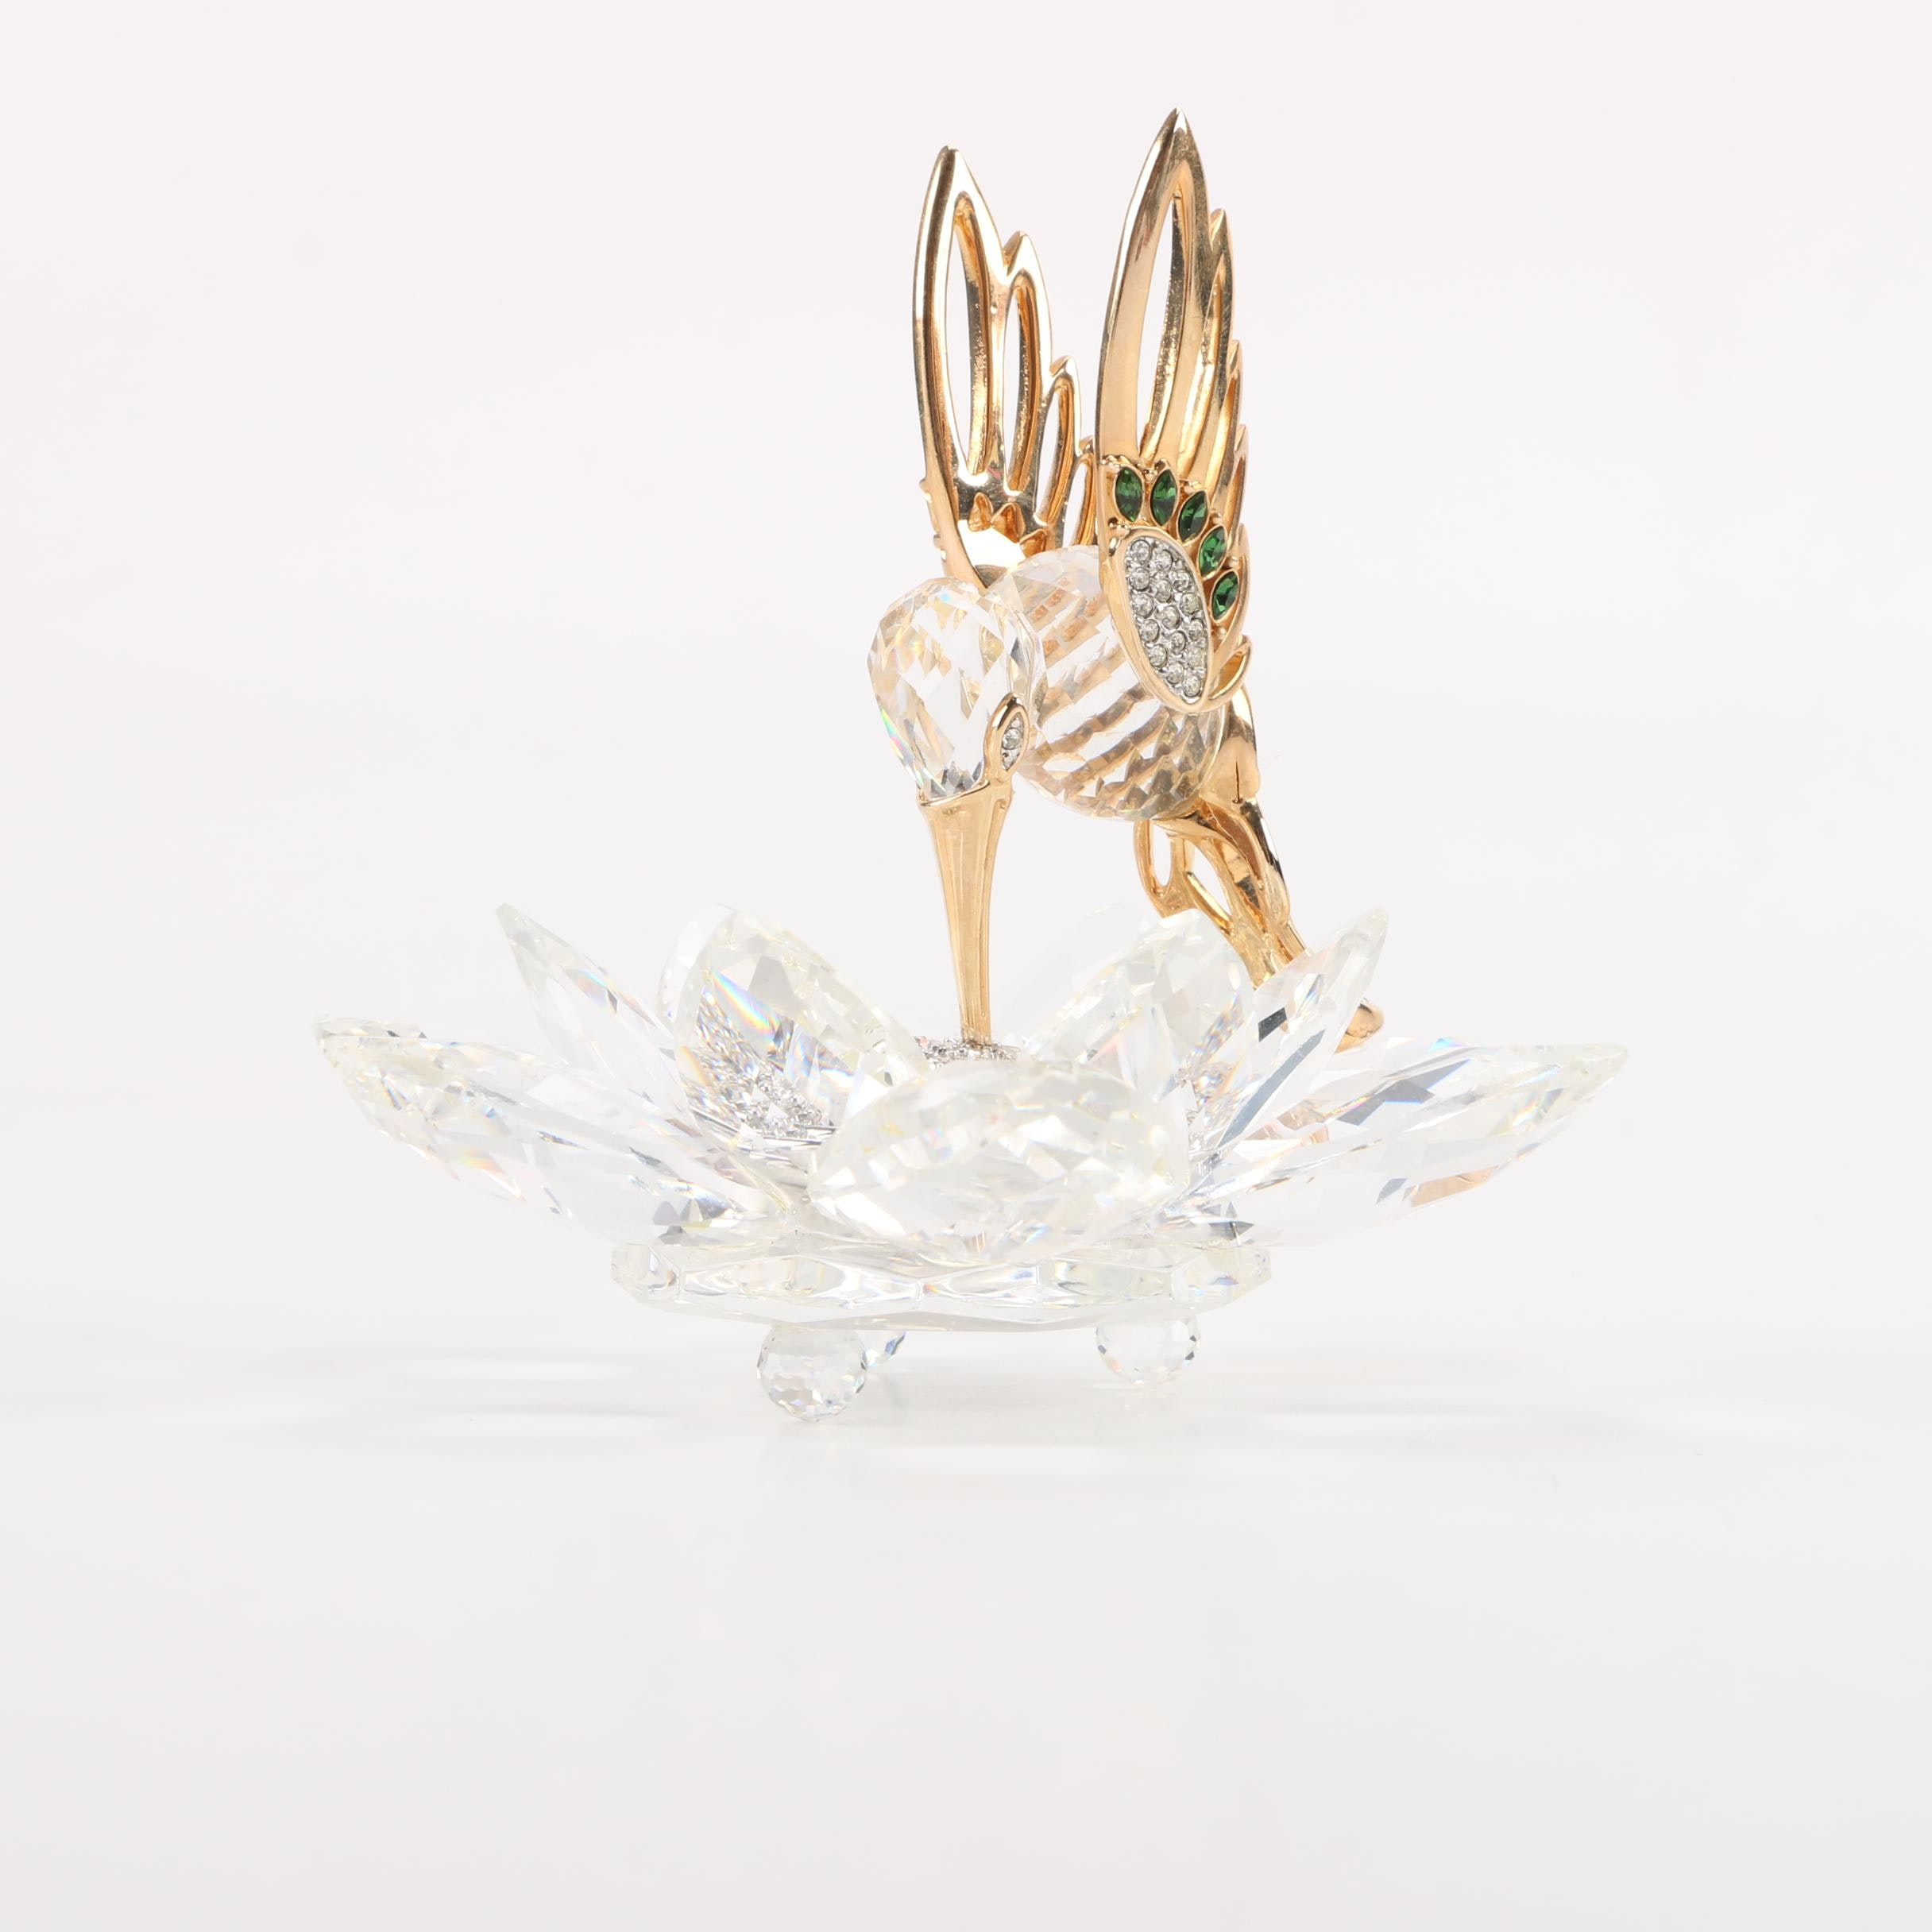 Swarovski Hummingbird and Flower Figurine